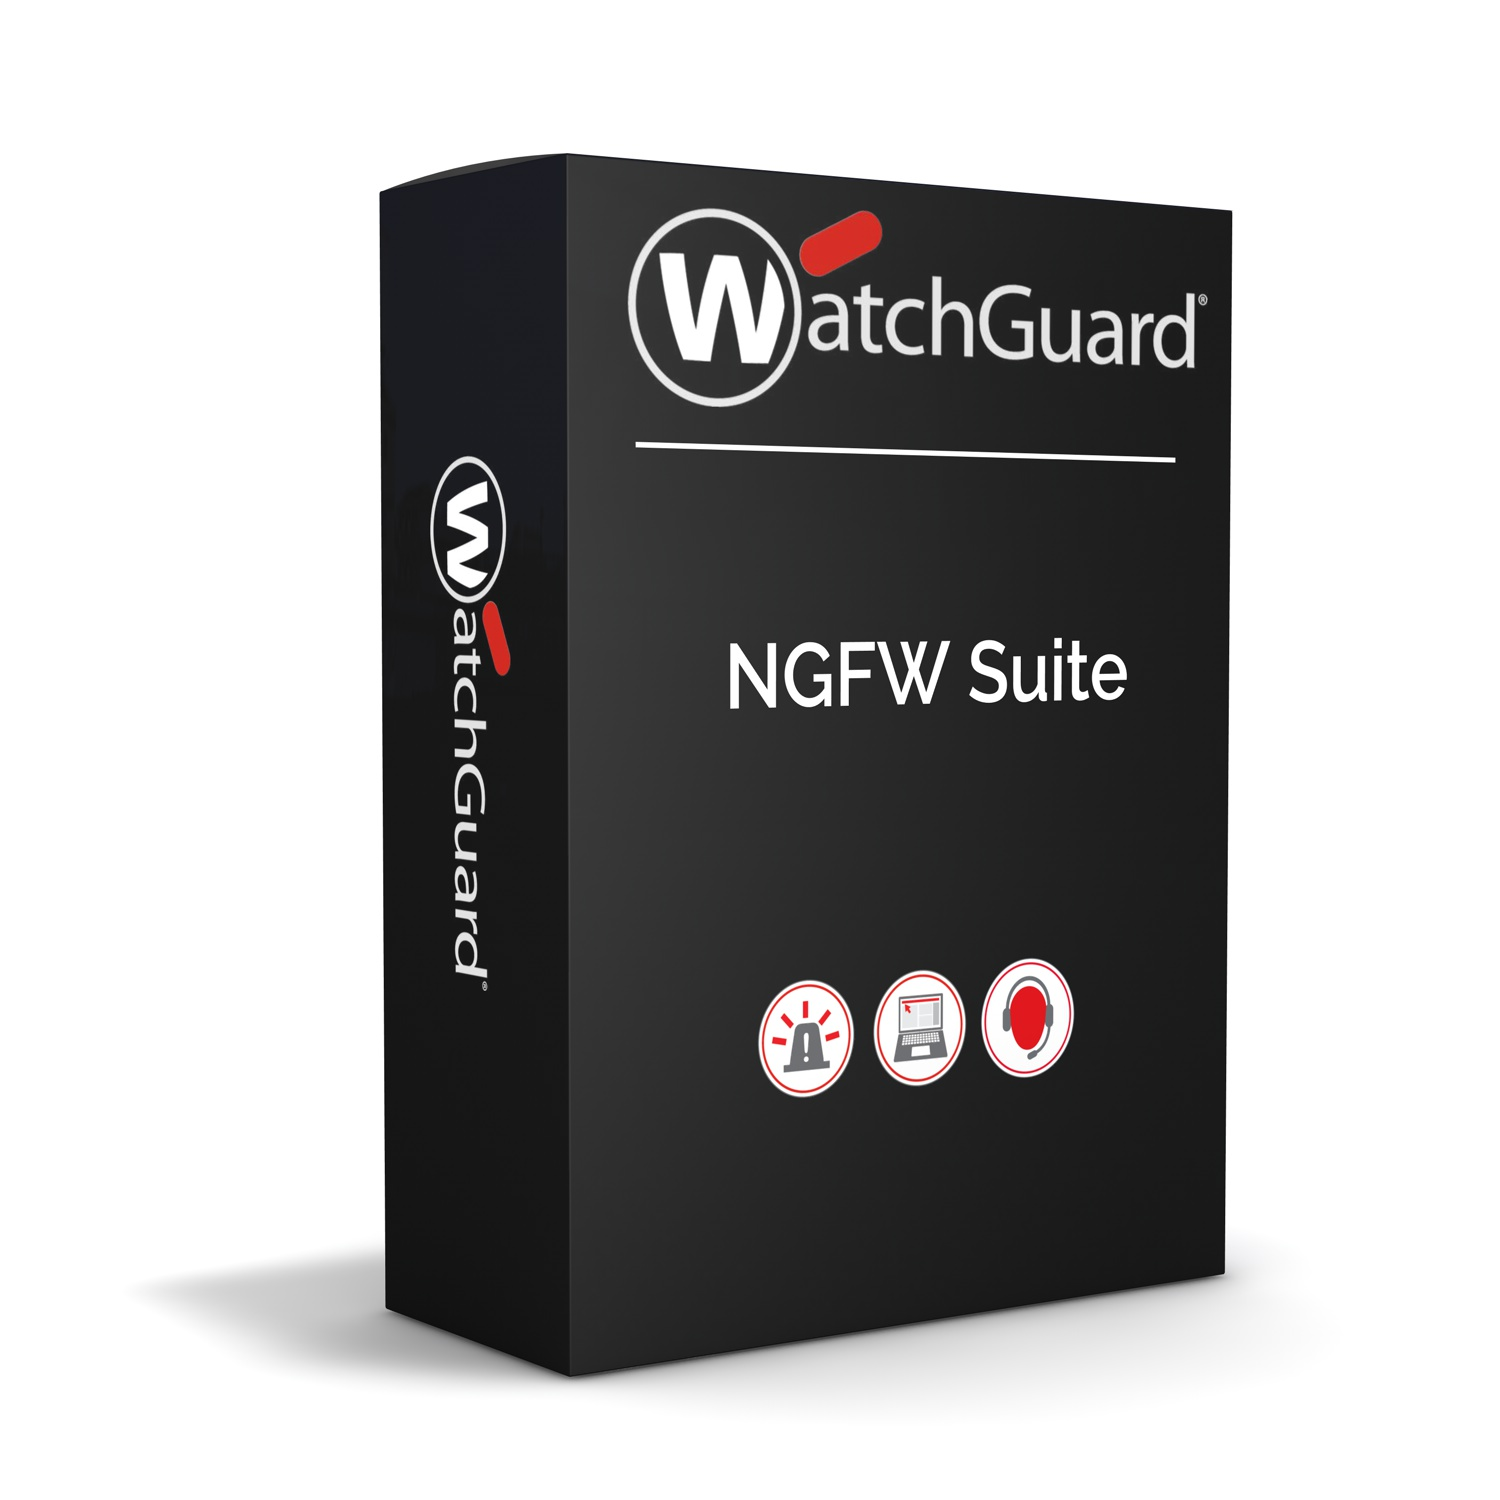 WatchGuard NGFW Suite Renewal/Upgrade 3-yr for Firebox M5600